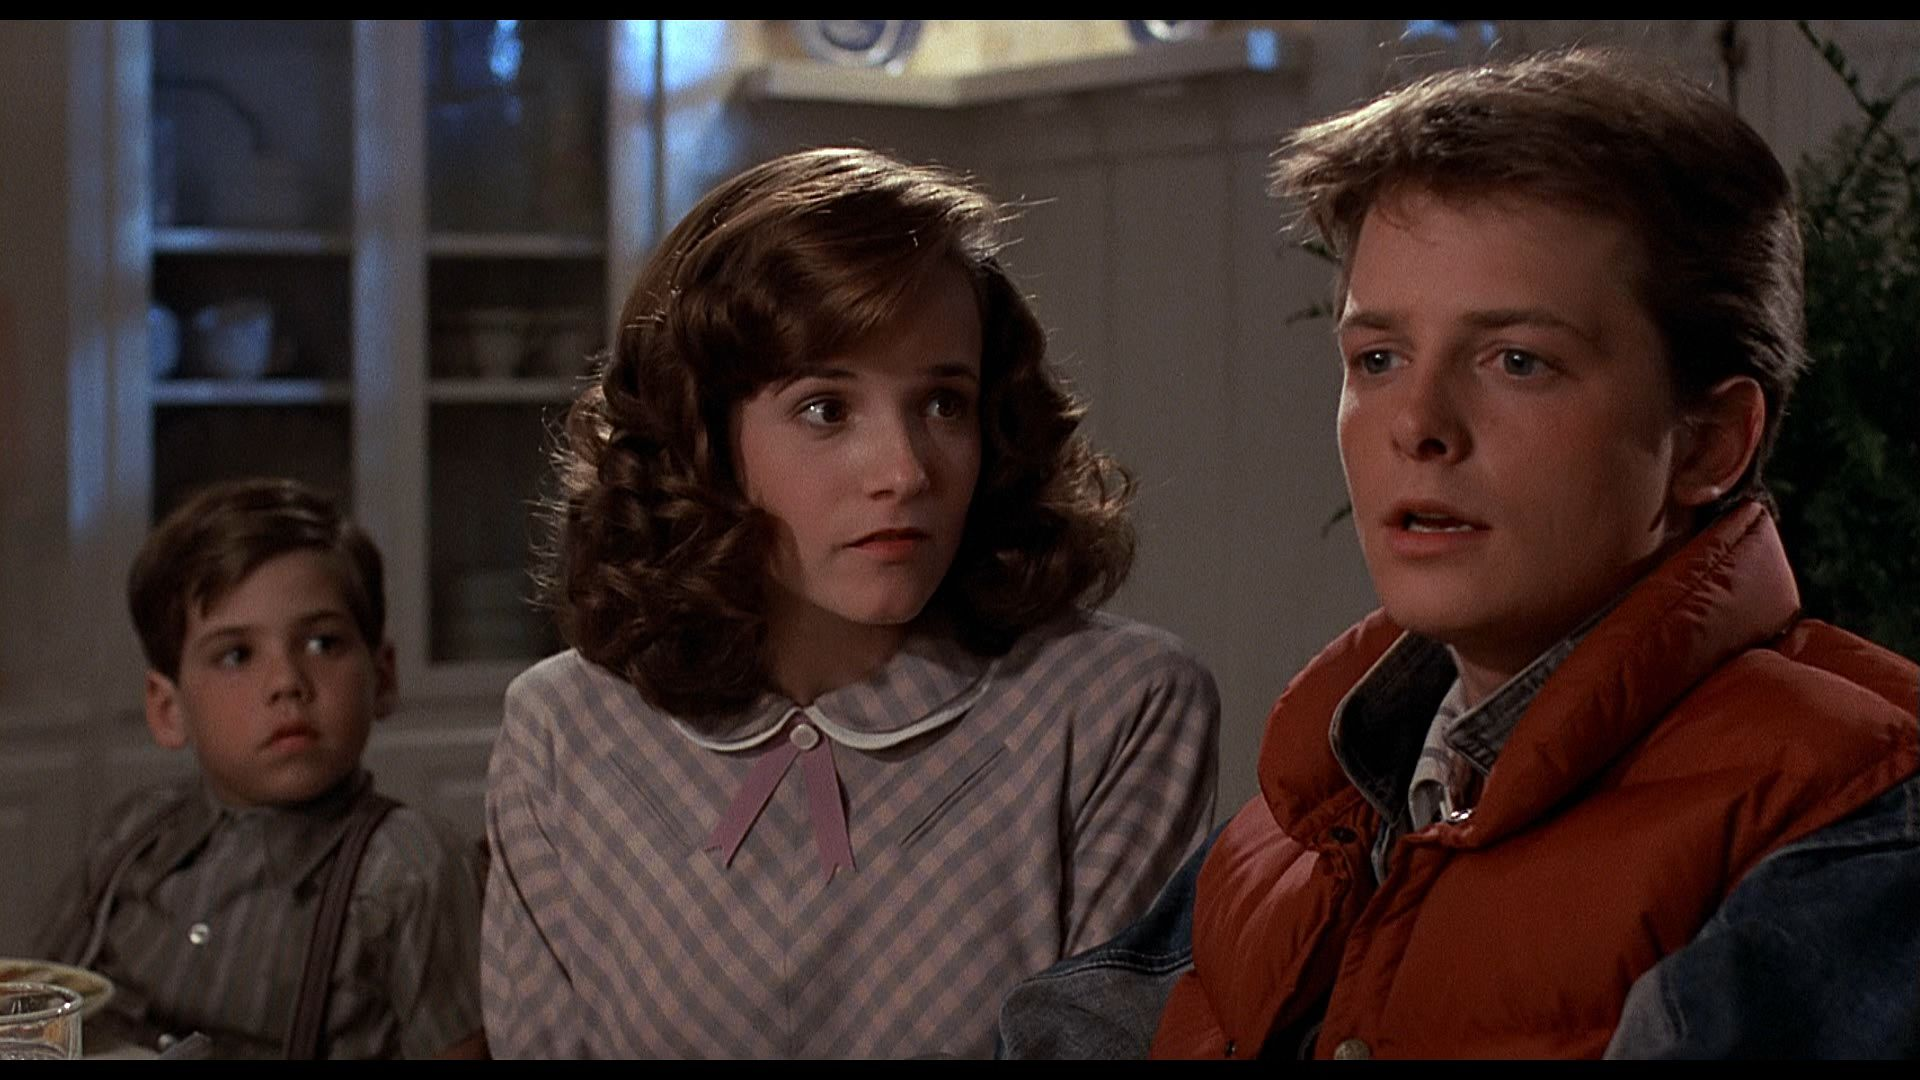 20-facts-about-back-to-the-future-1985-1990-that-will-blow-your-mind-image-via-wallpap-440035.jpg